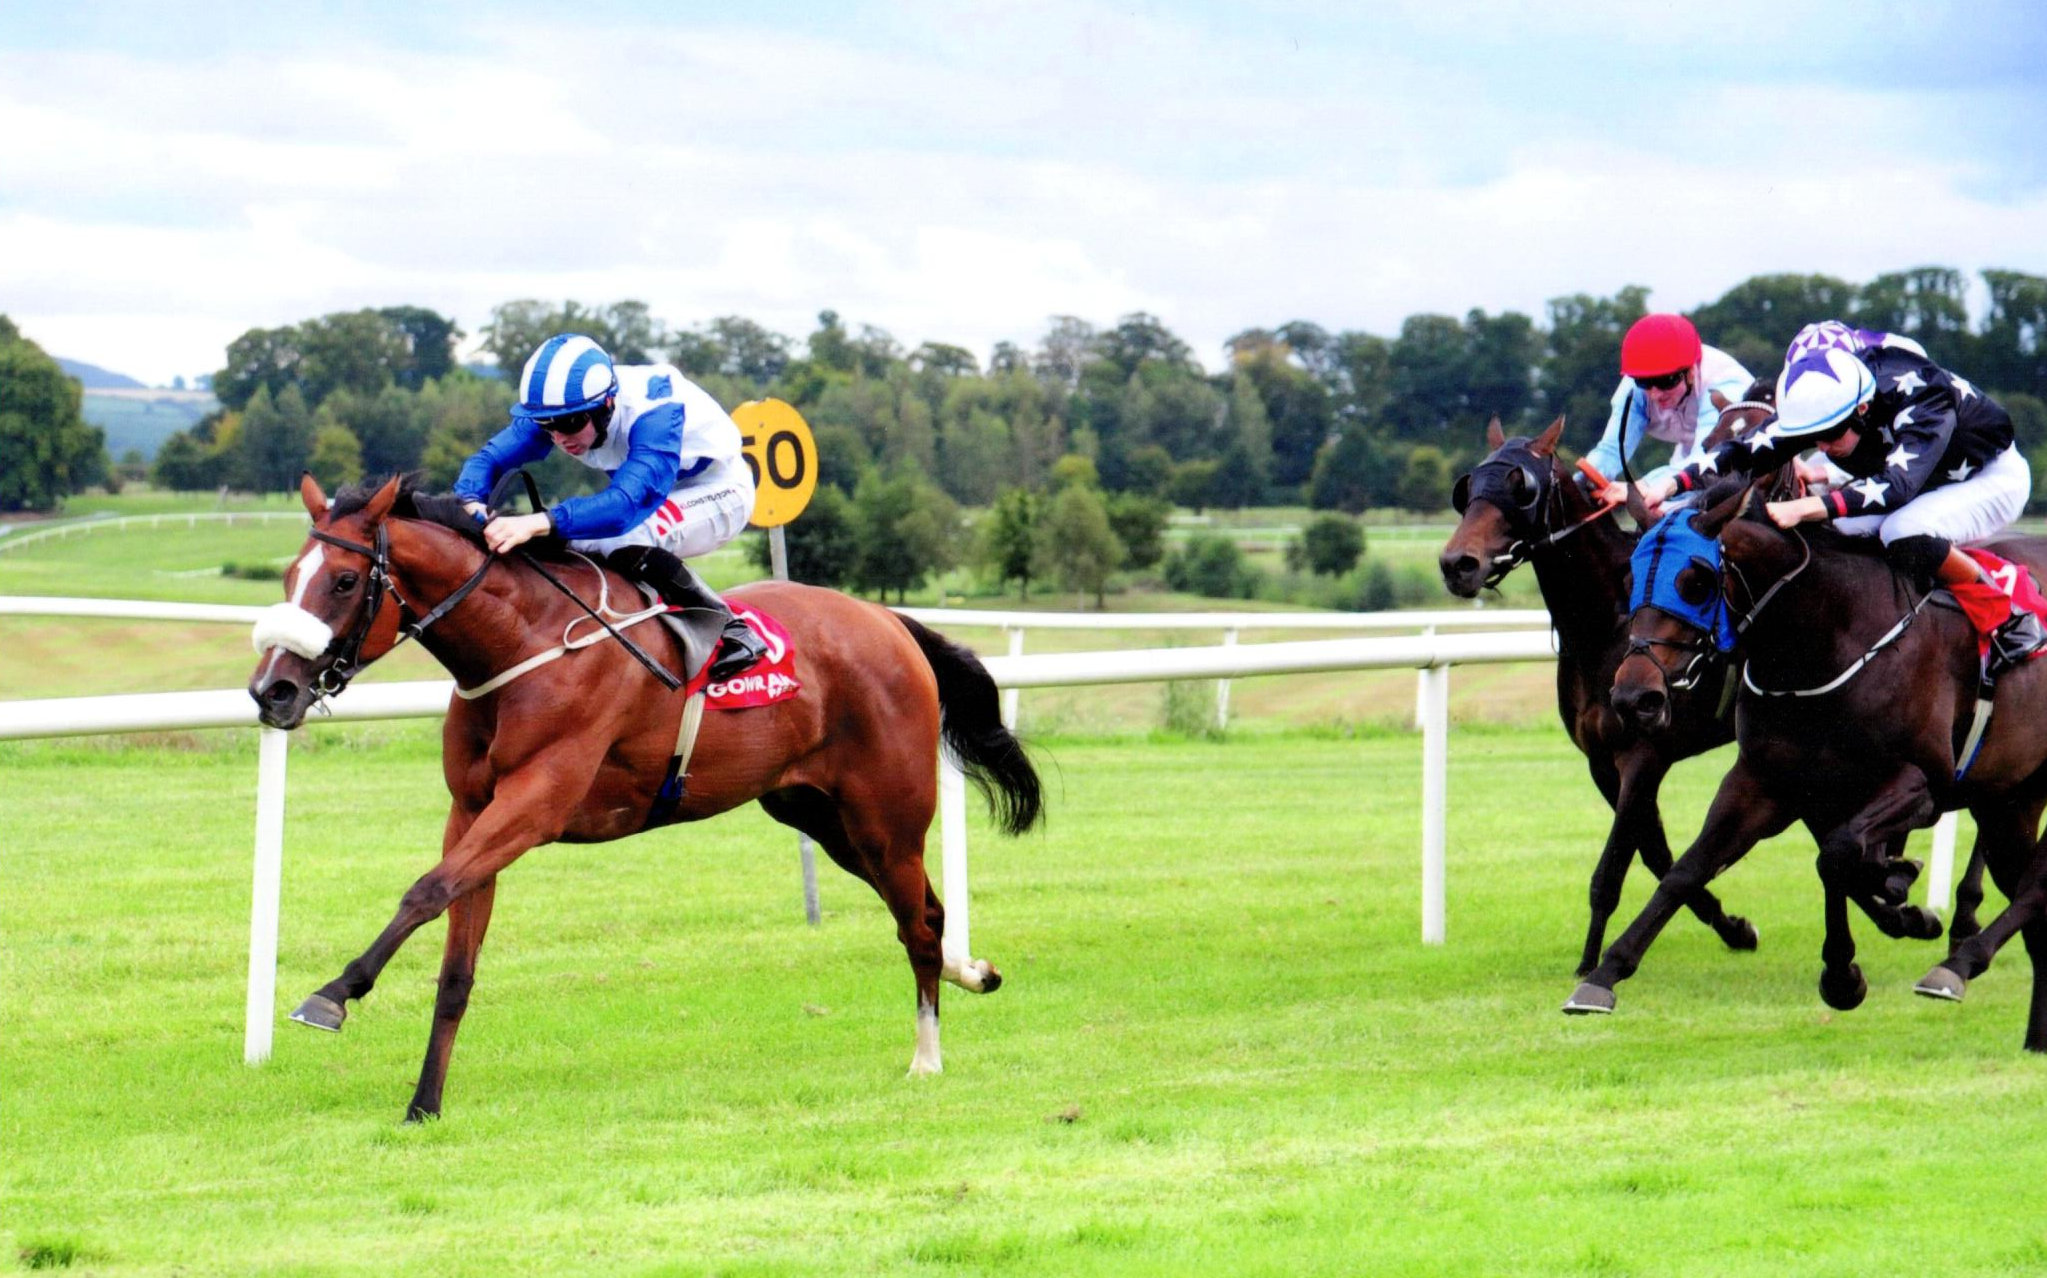 ZALZAR and Colin Keane get the job done at Gowran Park, 5th September 2018